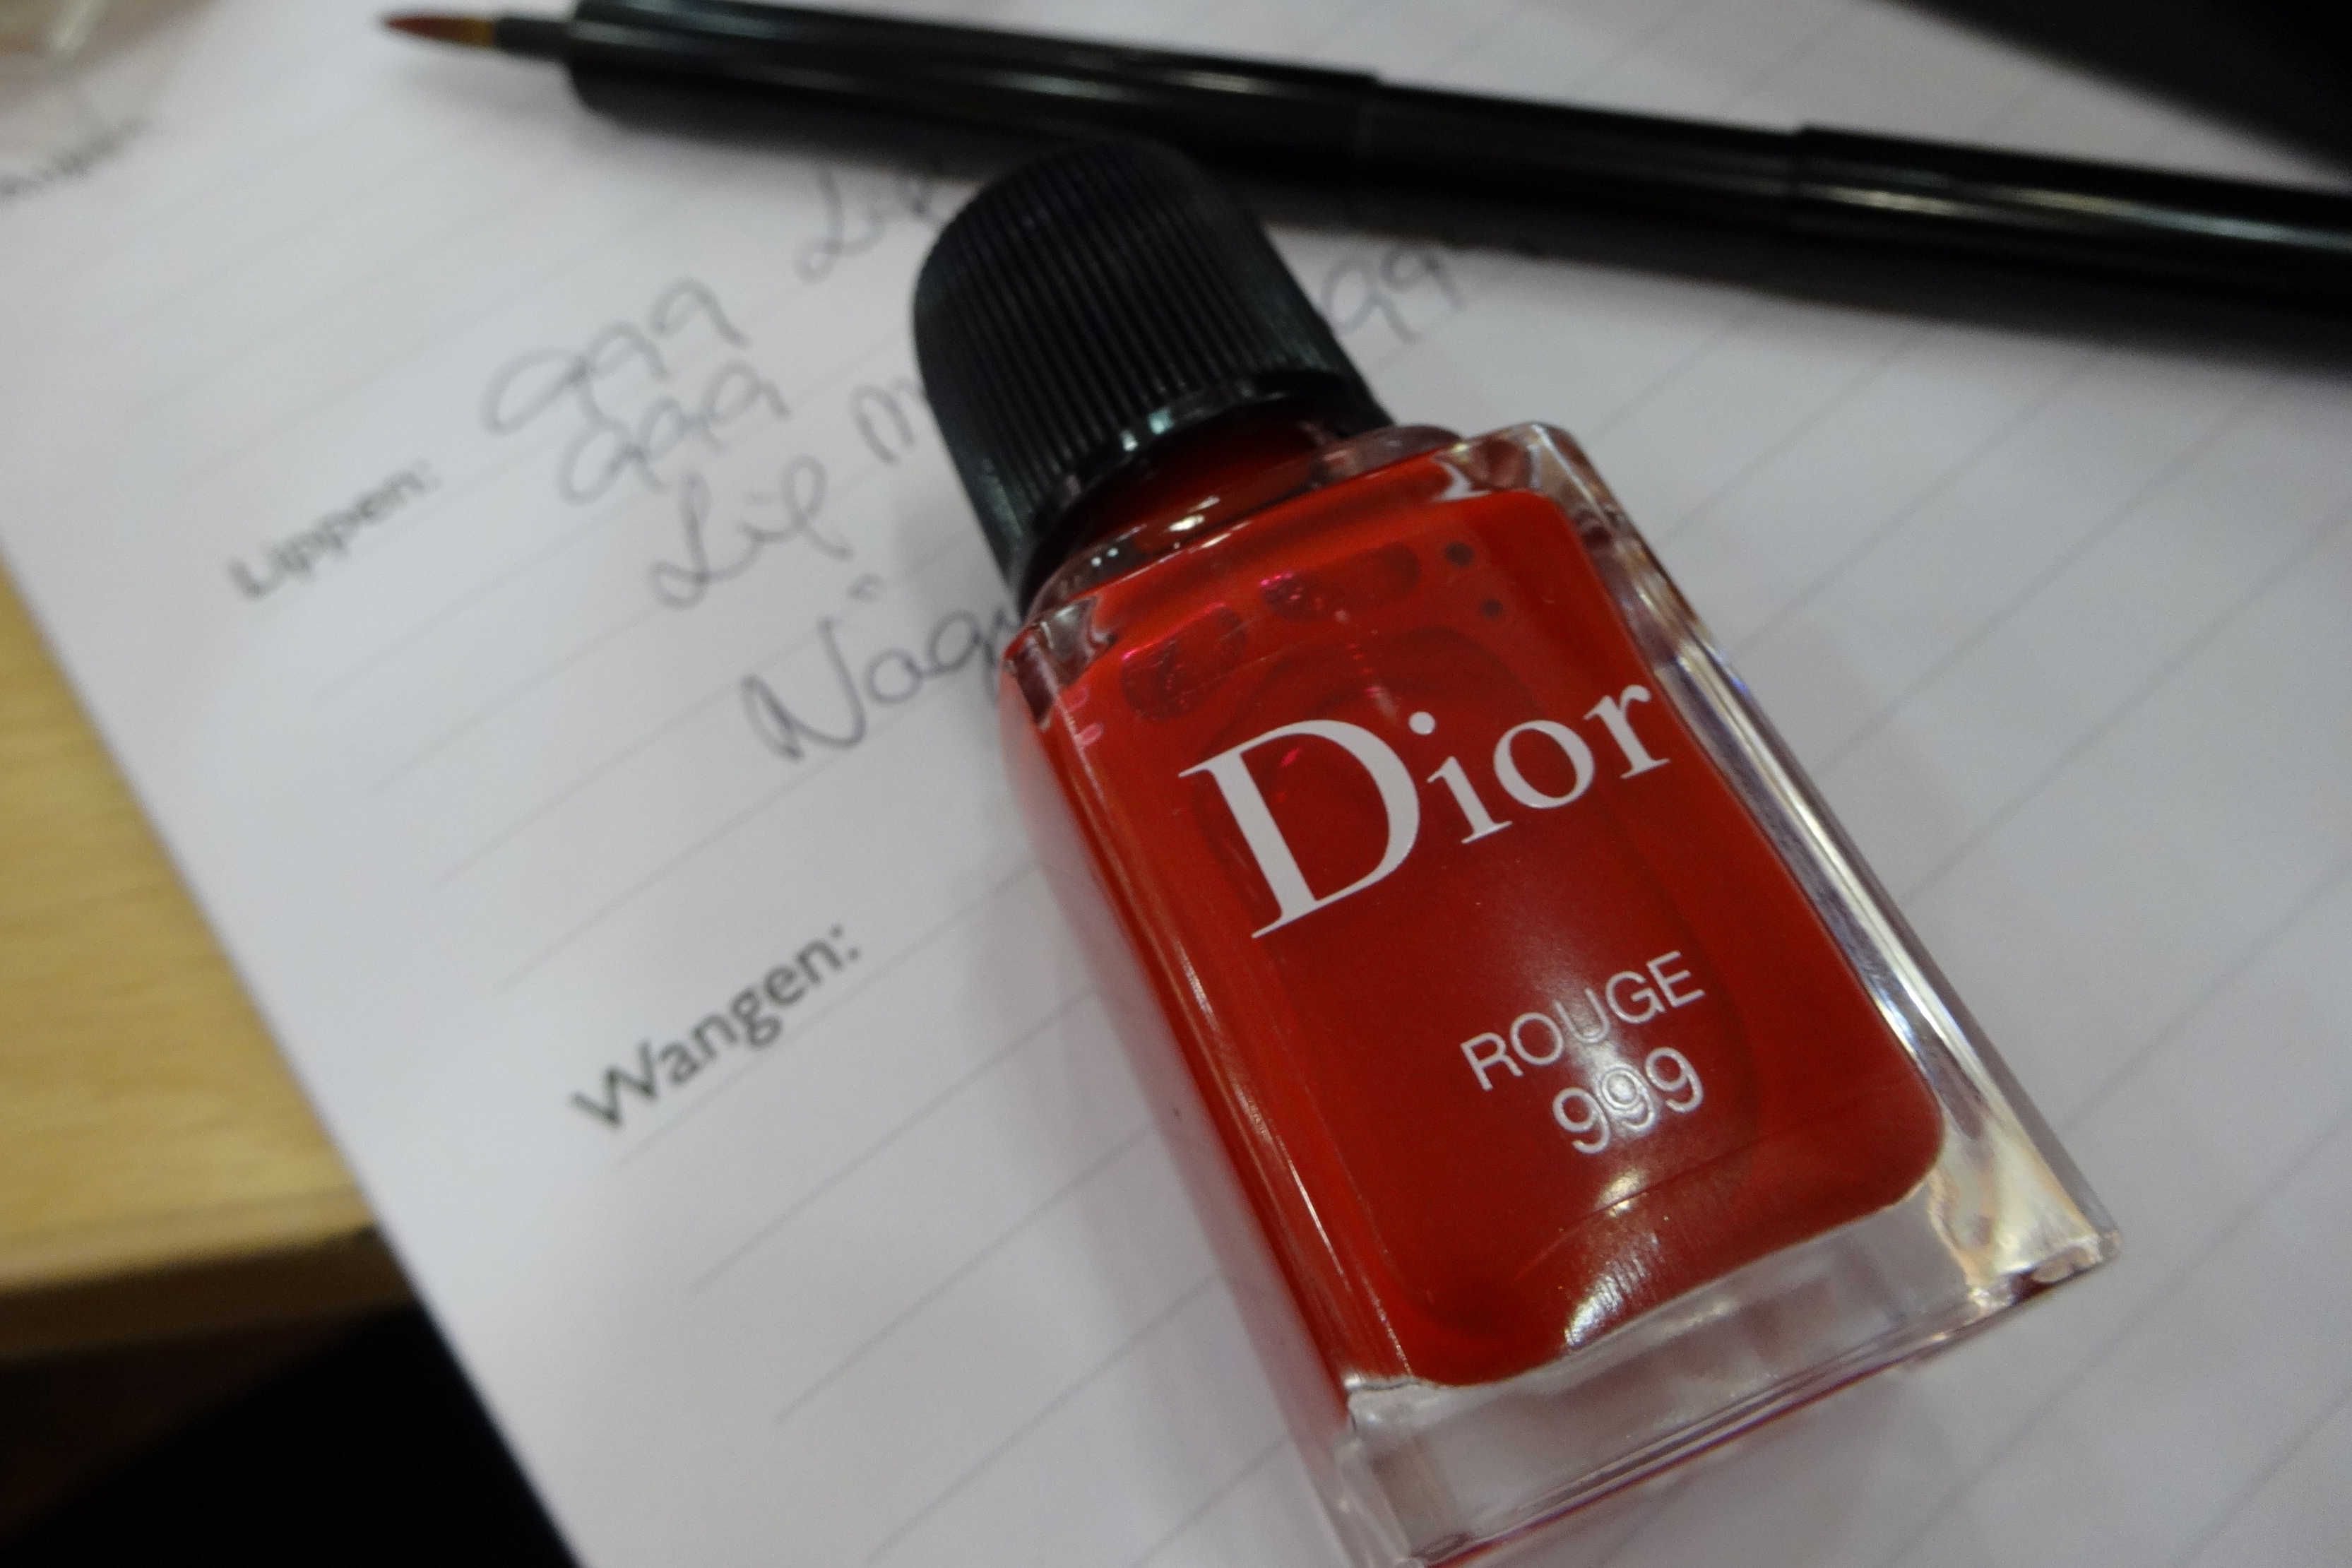 Christian Dior Rouge 999 - Happyface313